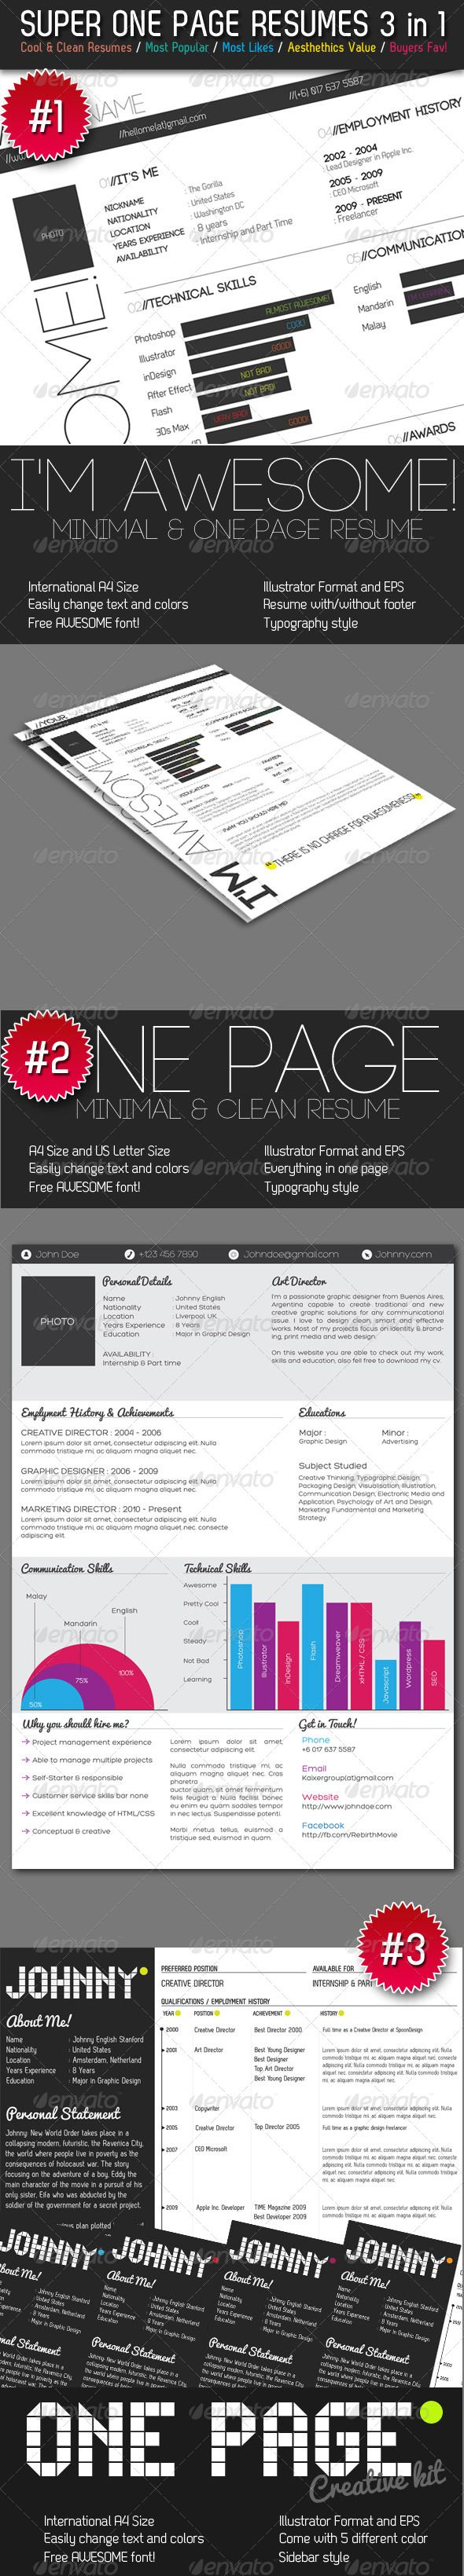 Chronological Resume Samples%0A Super One Page Resumes Bundle   in